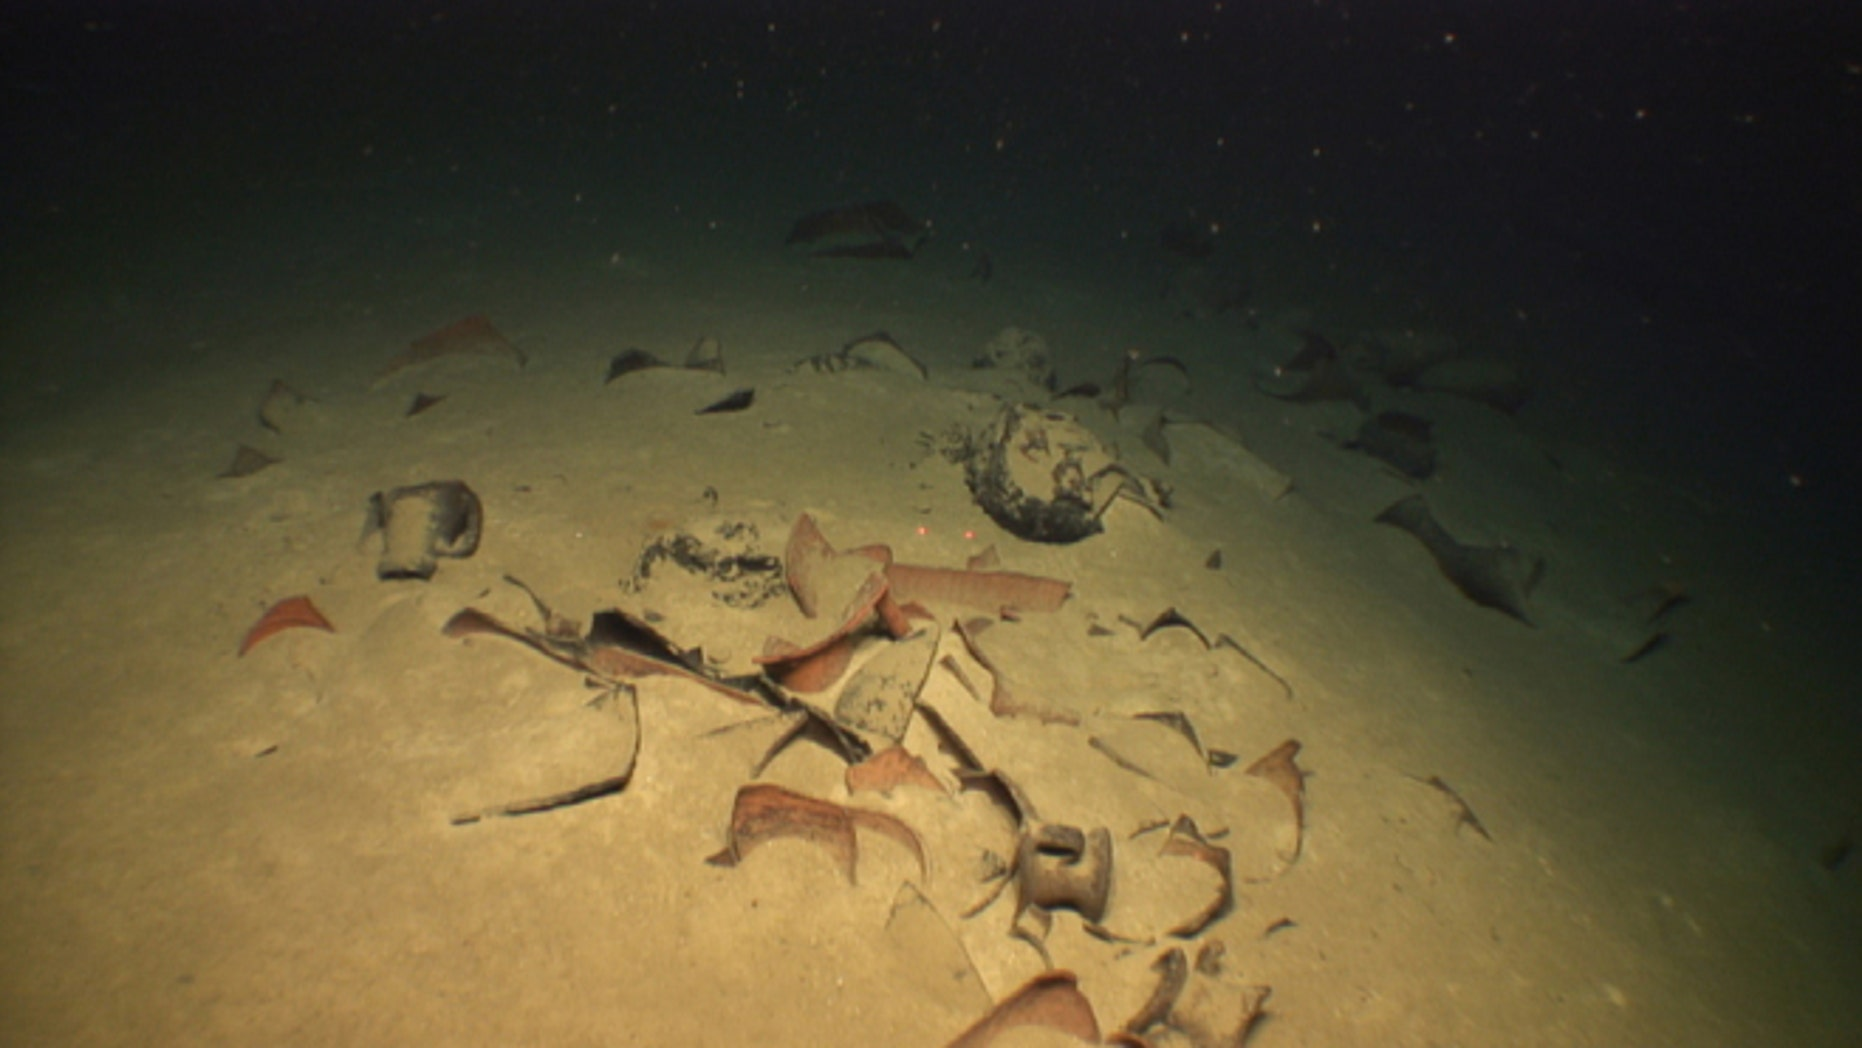 May 29, 2012: Broken ancient pottery from the wreck of a 3rd century AD Roman-era ship found 1.2 kilometers deep off the western coast of Greece. Greece's culture ministry says an undersea survey ahead of the sinking of a Greek-Italian gas pipe discovered the deepest-known shipwrecks in the Mediterranean.